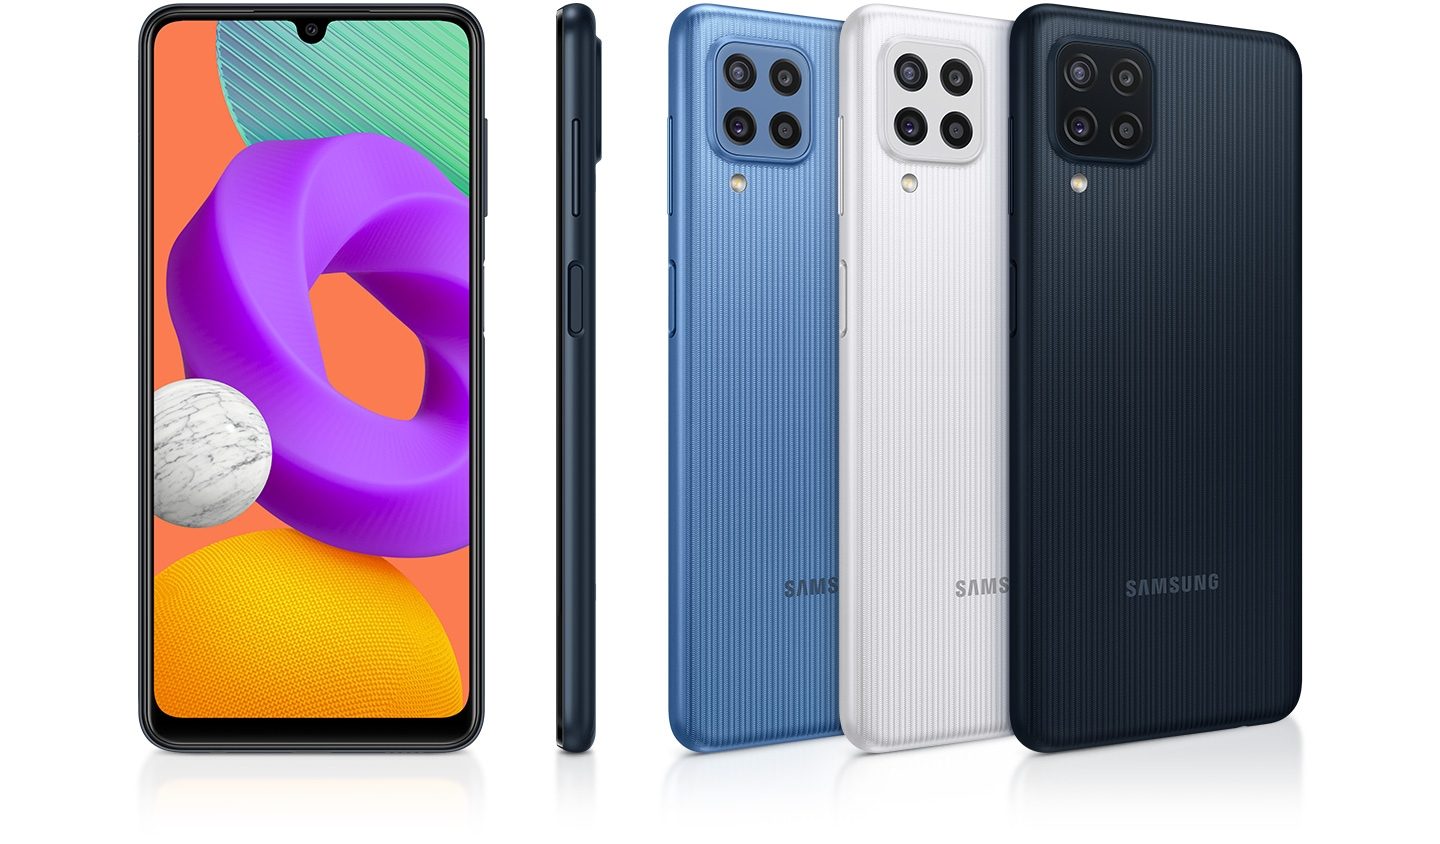 Five devices are displayed to appeal their colors and design. Three reversed ones are in sky blue, white and black; while one is looking at the front and another showing the right side of device.